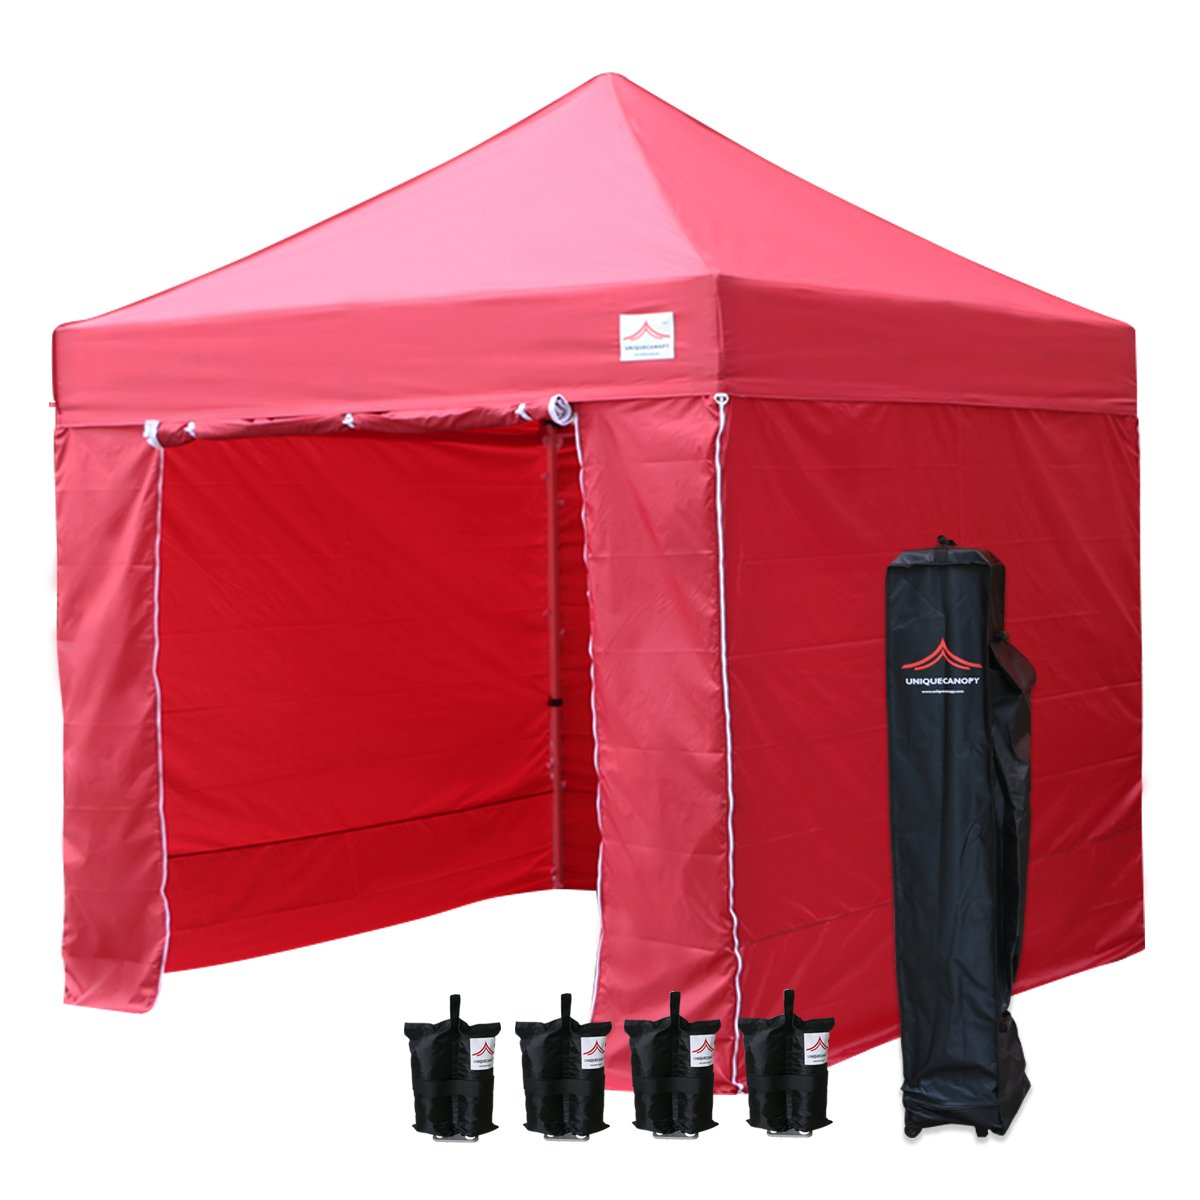 UNIQUECANOPY 10x10 Ez Pop up Canopy Tents for Parties Outdoor Portable Instant Folded Commercial Popup Shelter, with 4 Zippered Side Walls and Wheeled Carrying Bag Bonus 4 Sandbags Red